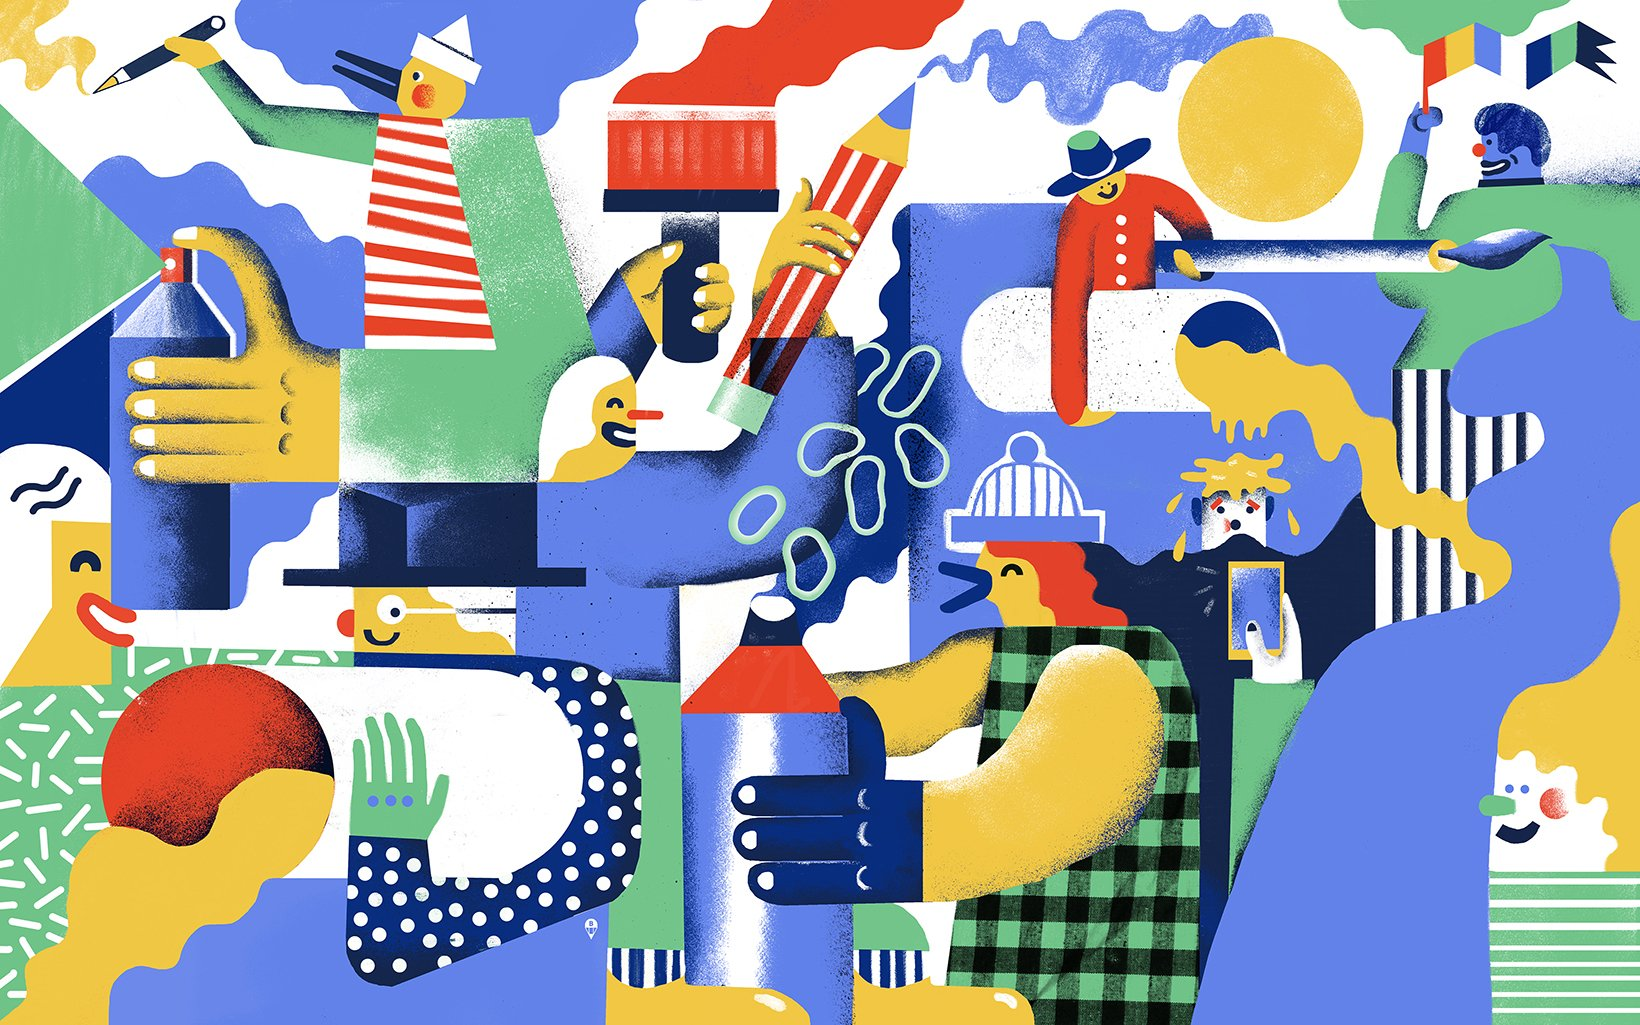 Part of a mural project for Samsung.